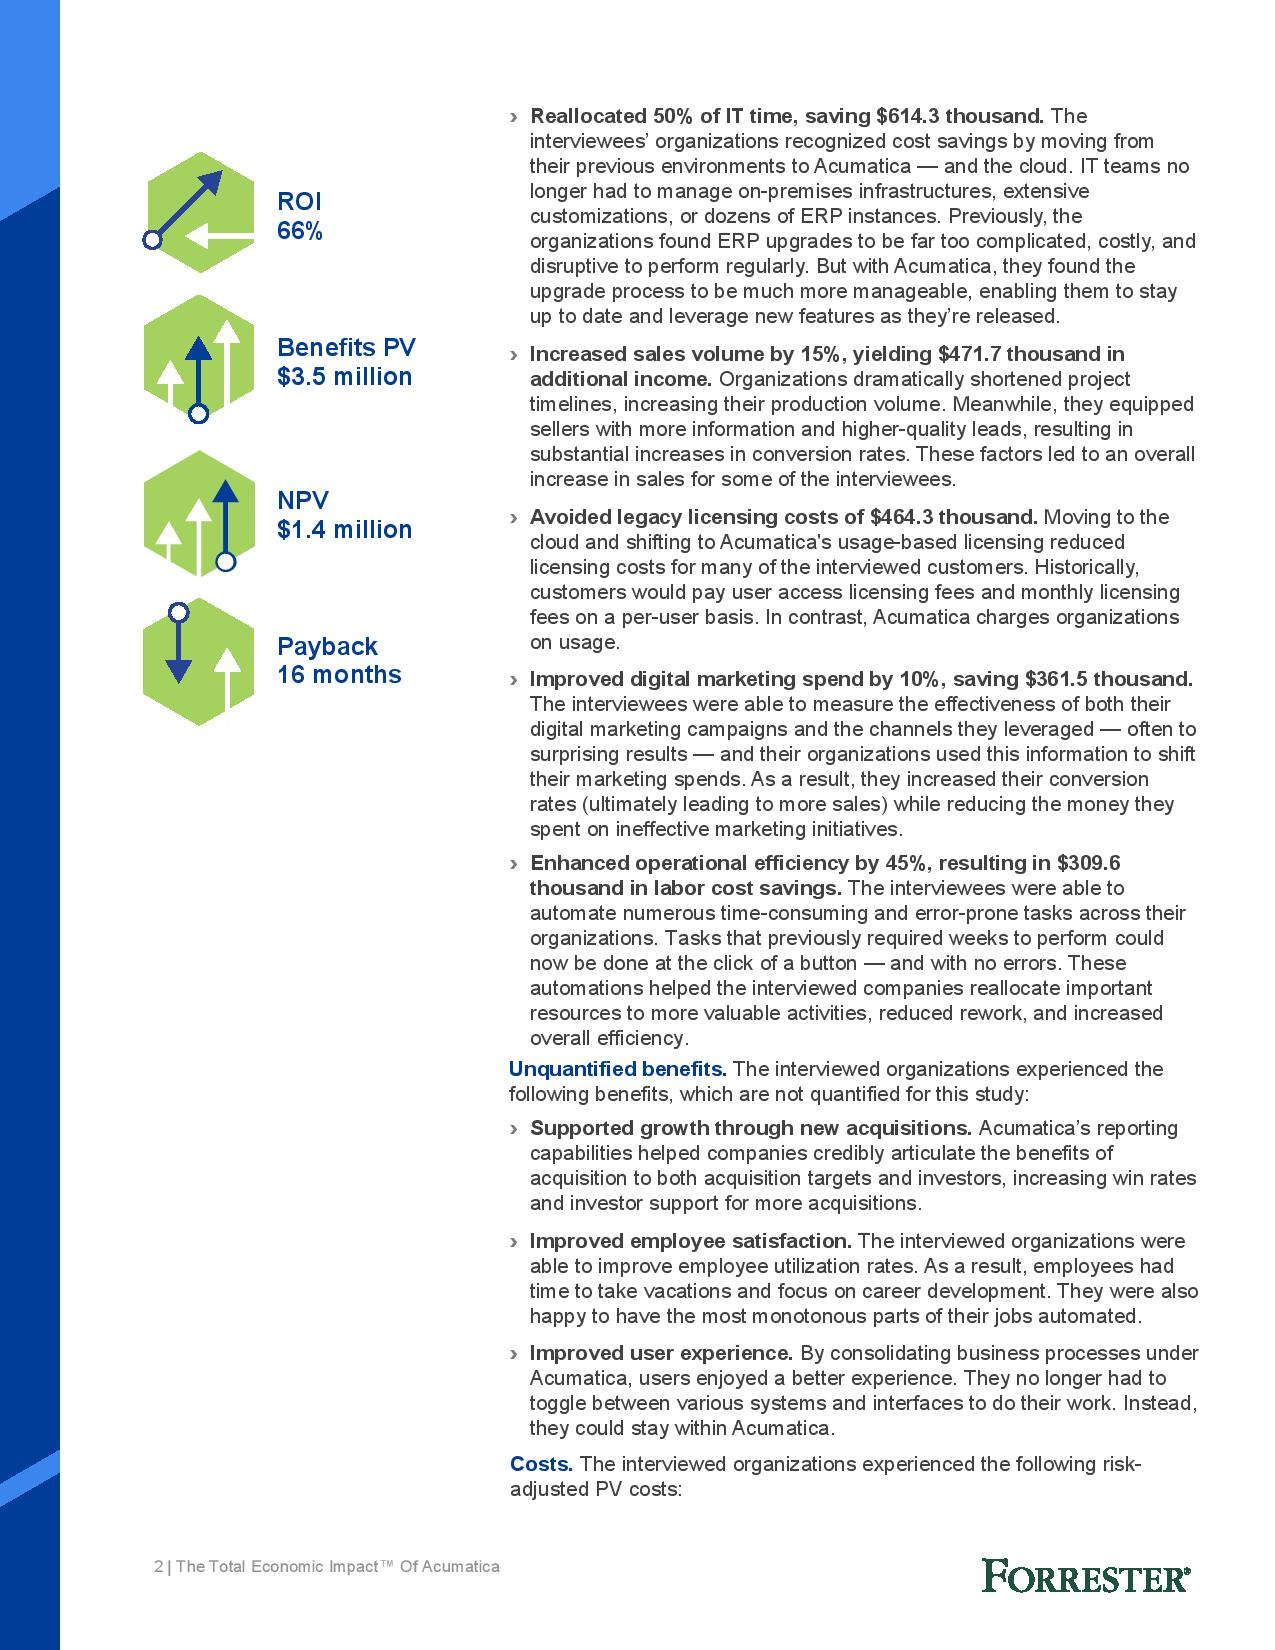 Discover the Financial and Business Benefits of Cloud ERP Adoption, page 3